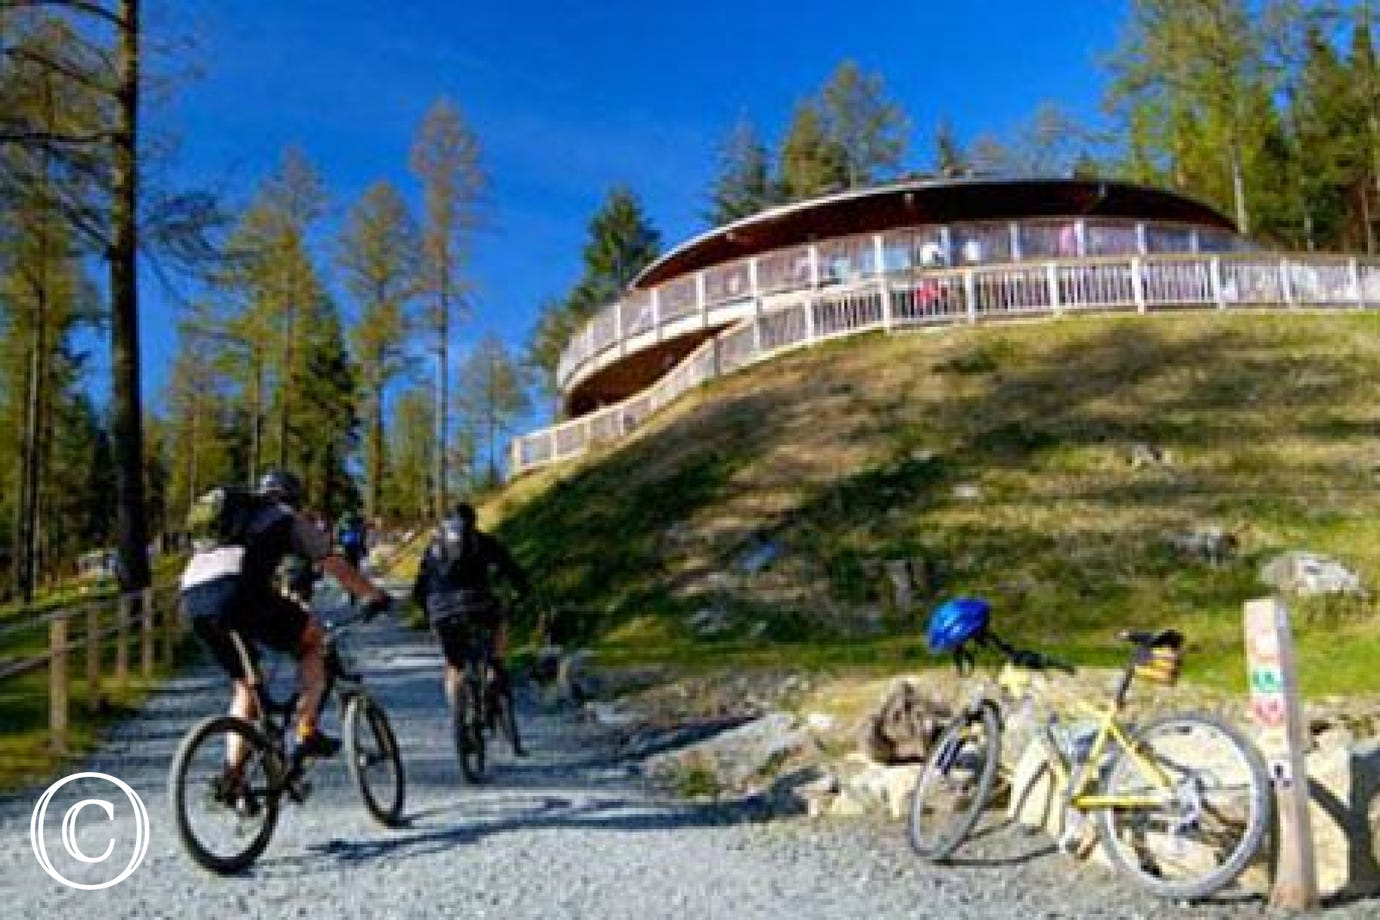 A day of adventure at Coed y Brenin Mountain Biking Centre (6 miles)